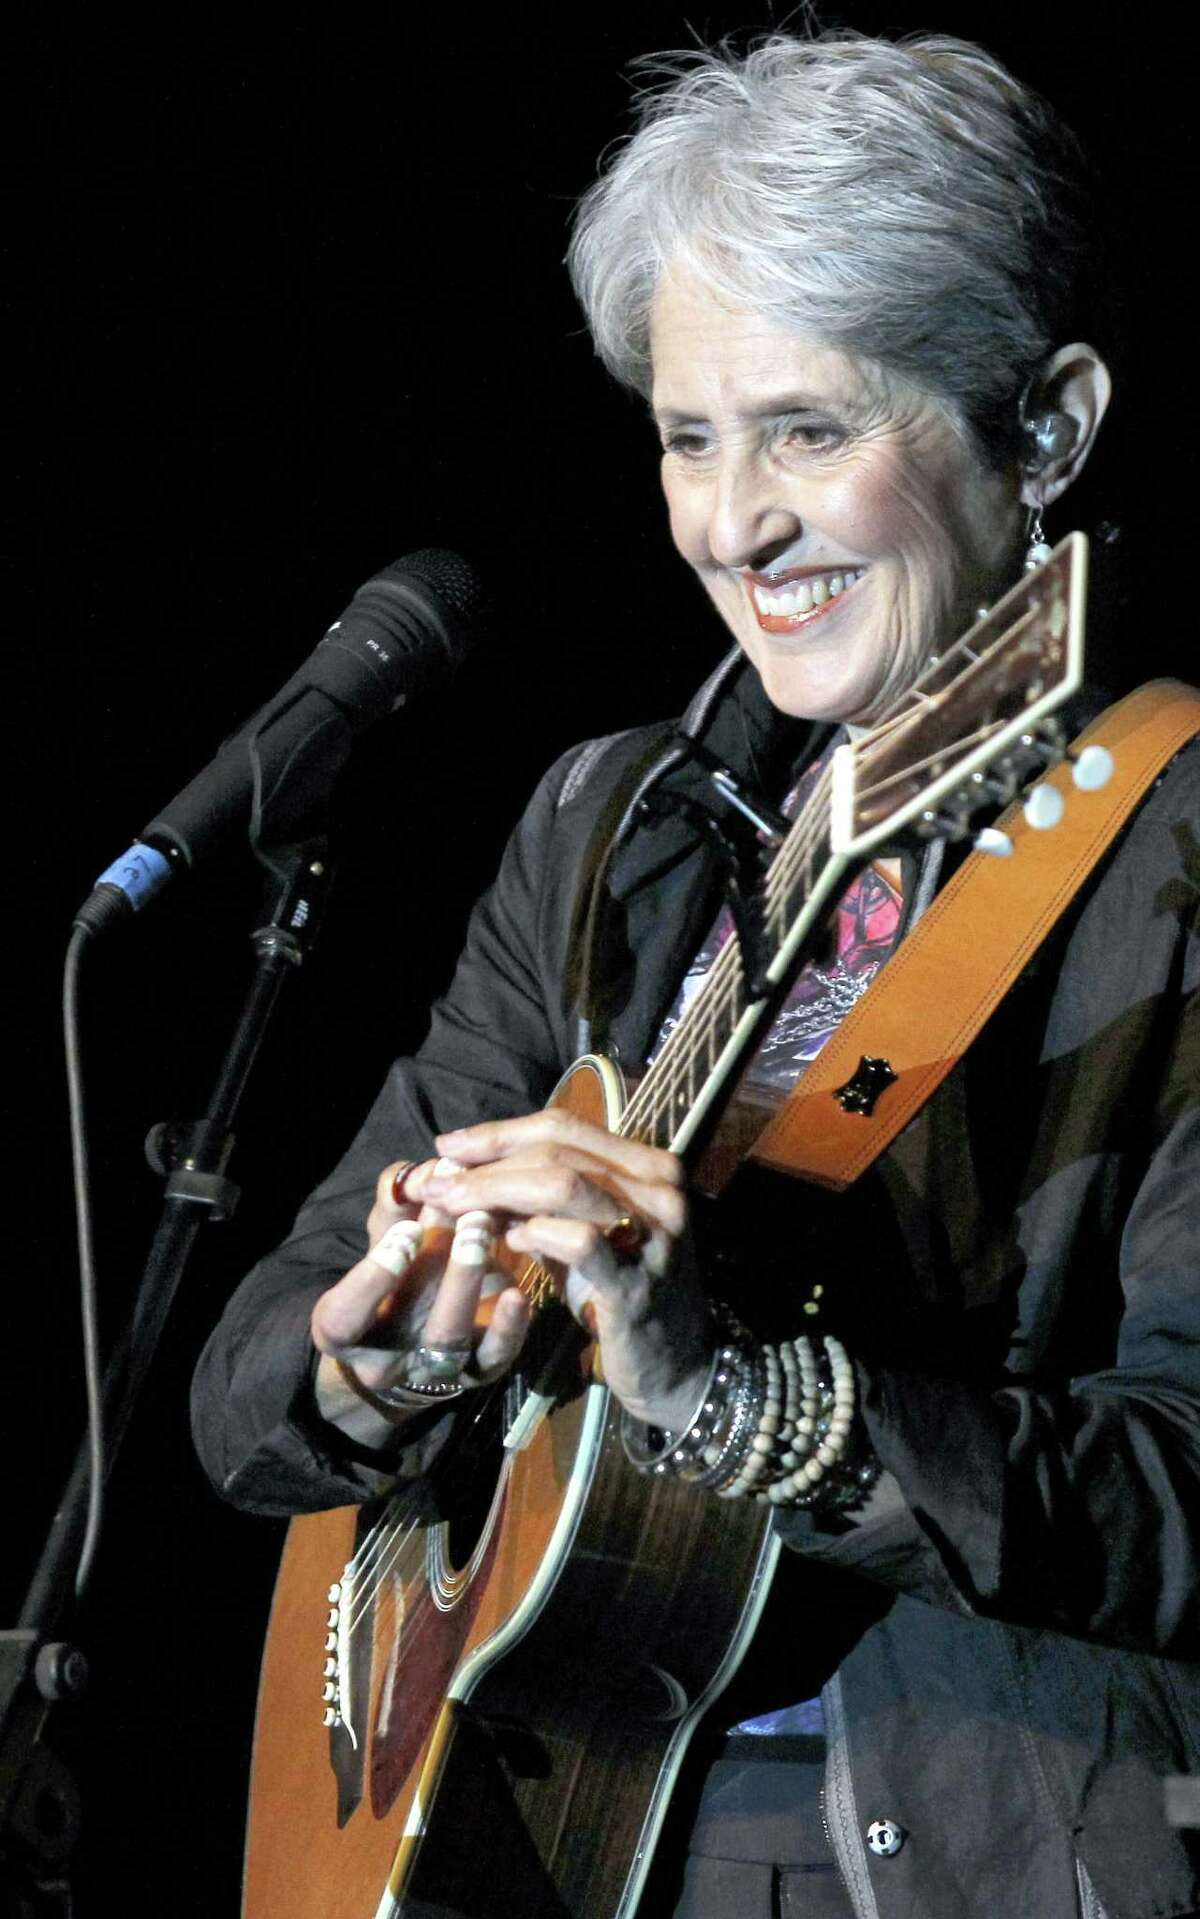 American folk singer Joan Baez is seen at a concert in Burgos, northern Spain, on Wednesday, March 3, 2010. Baez is on a world tour to promote her new album